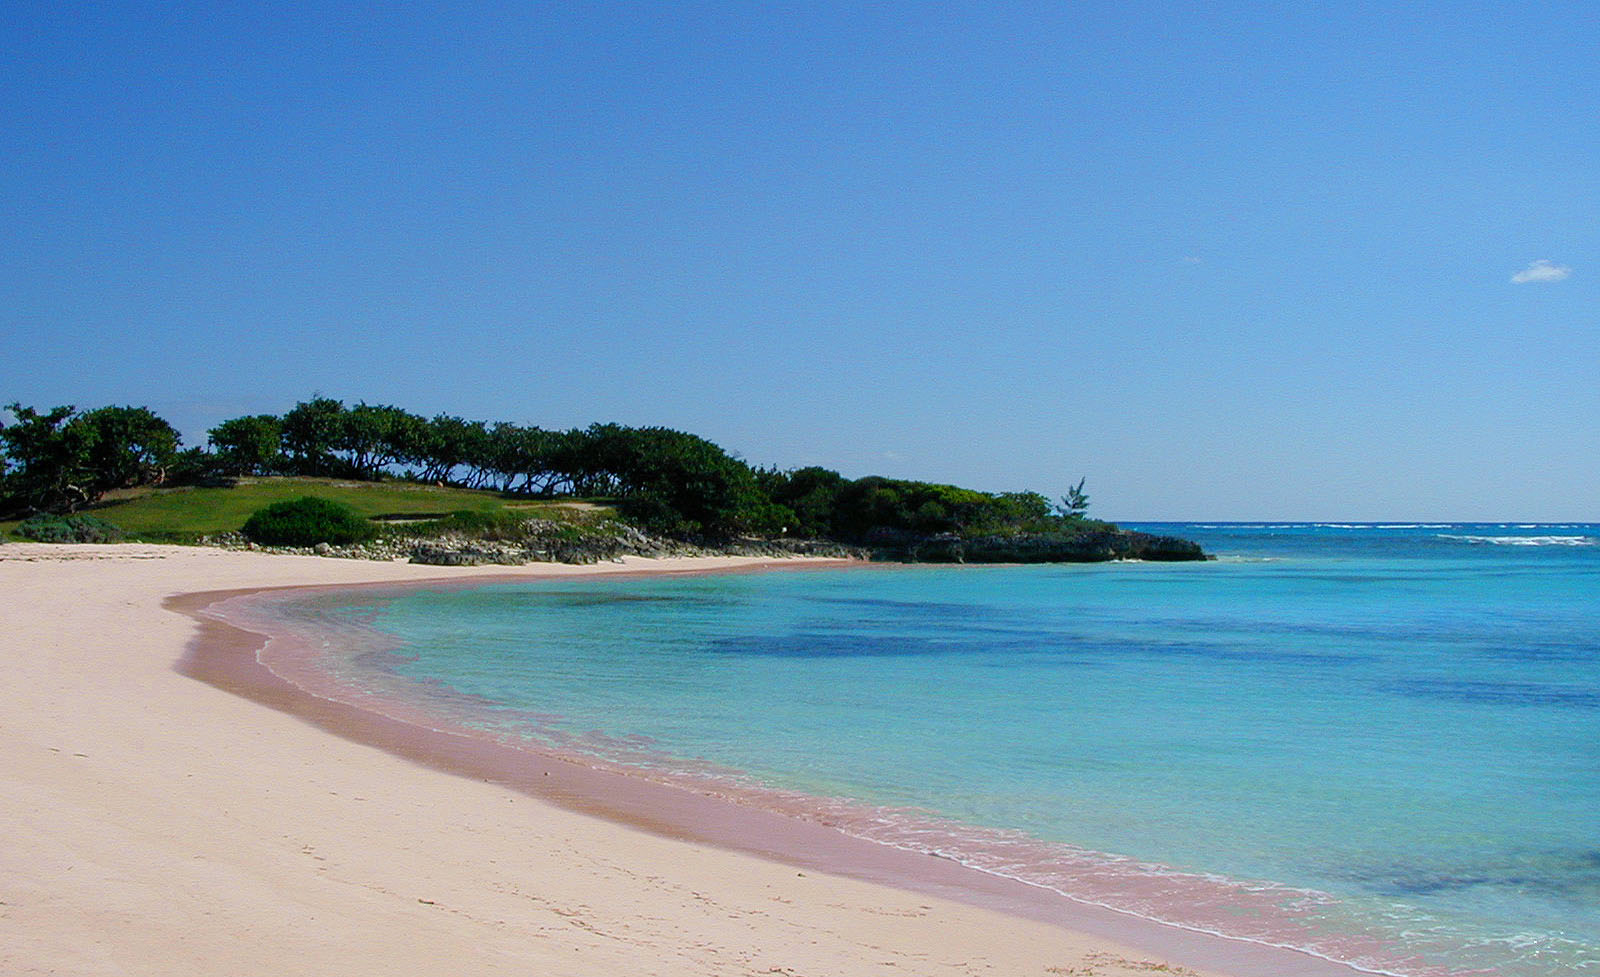 Pink sands beach free stockphoto for Pink sand beaches bahamas